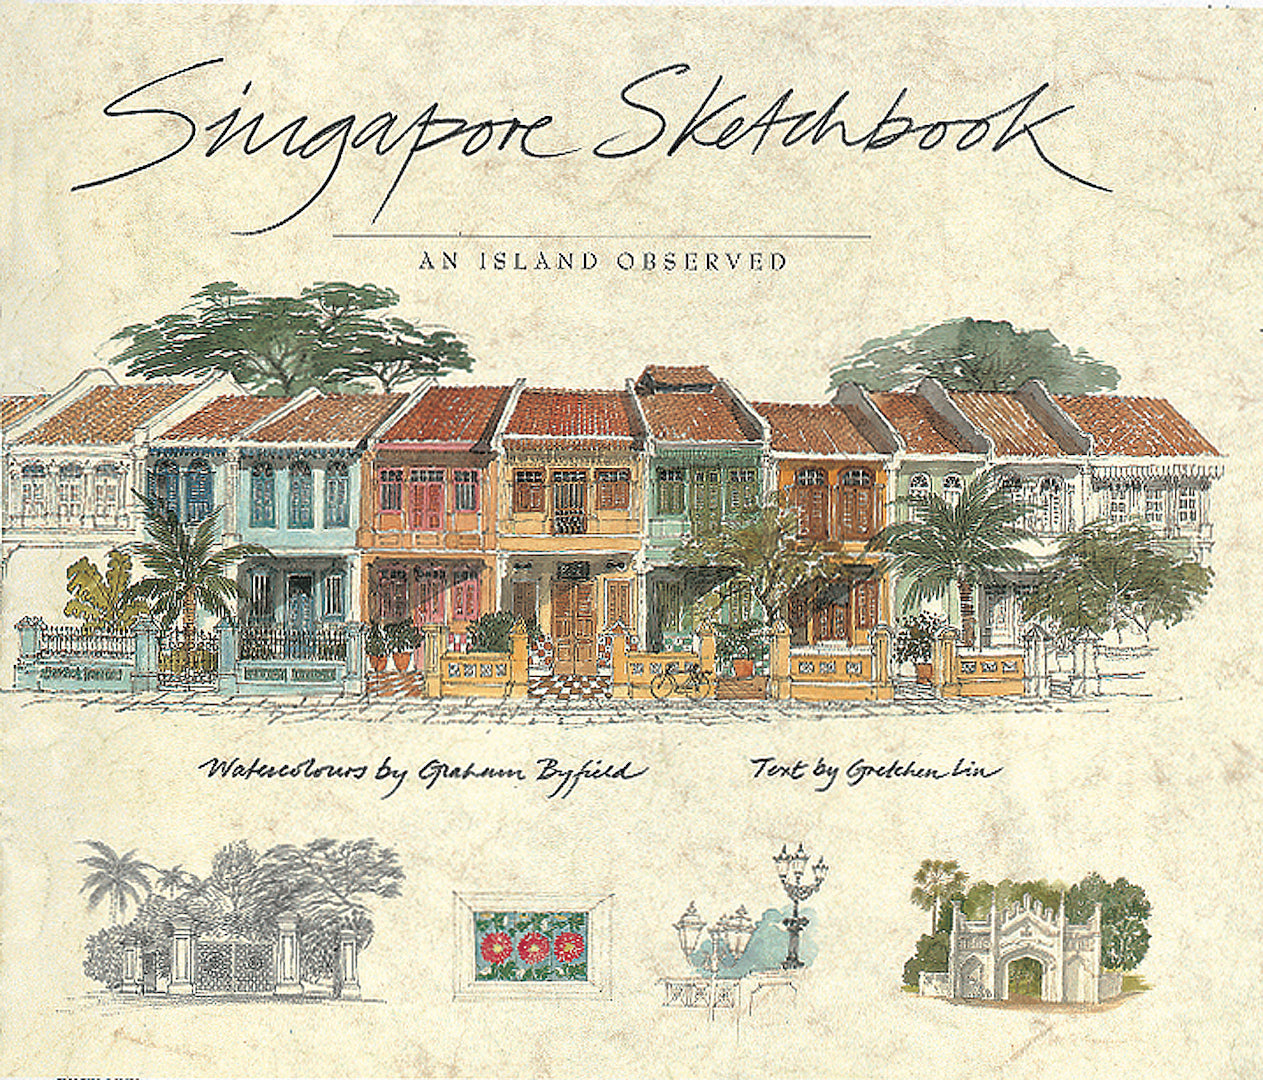 Singapore Sketchbook (Revised Edition)